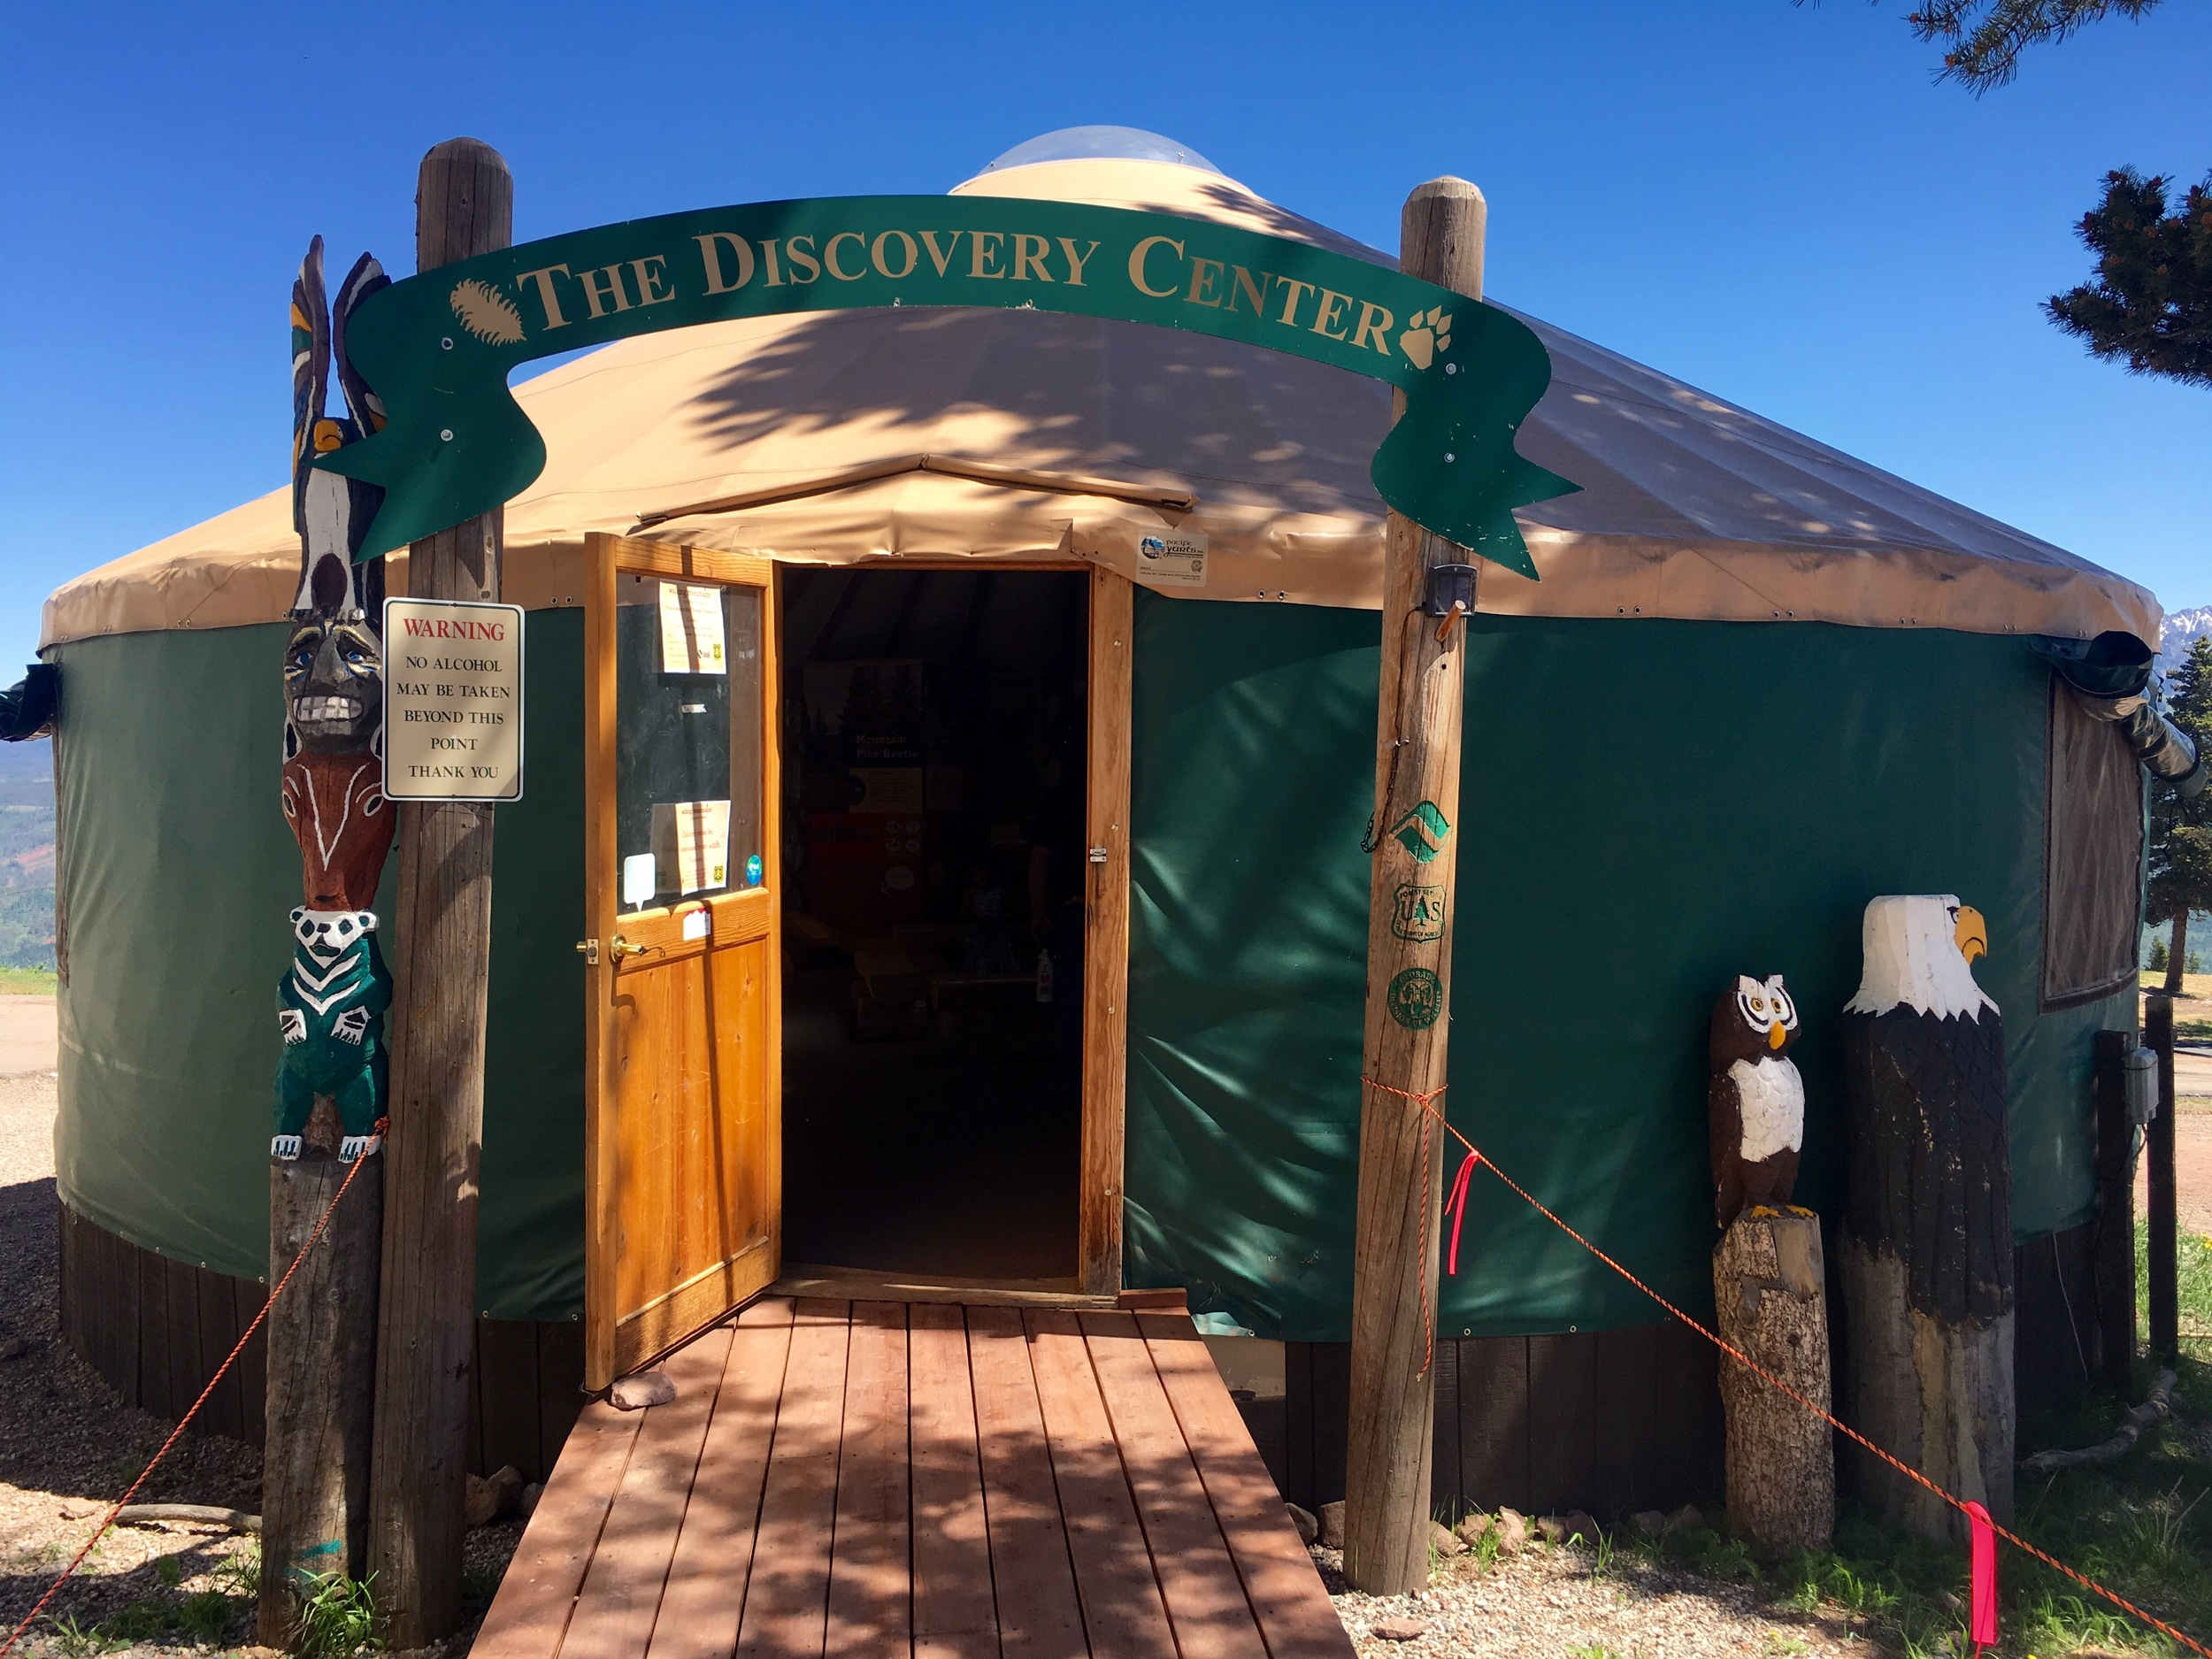 A partnership between Vail, The Nature Conservancy, and the U.S. Forest Service provides interpretive programing, including The Discovery Center with exhibits on the forest's flora and fauna. (@beingalexp)